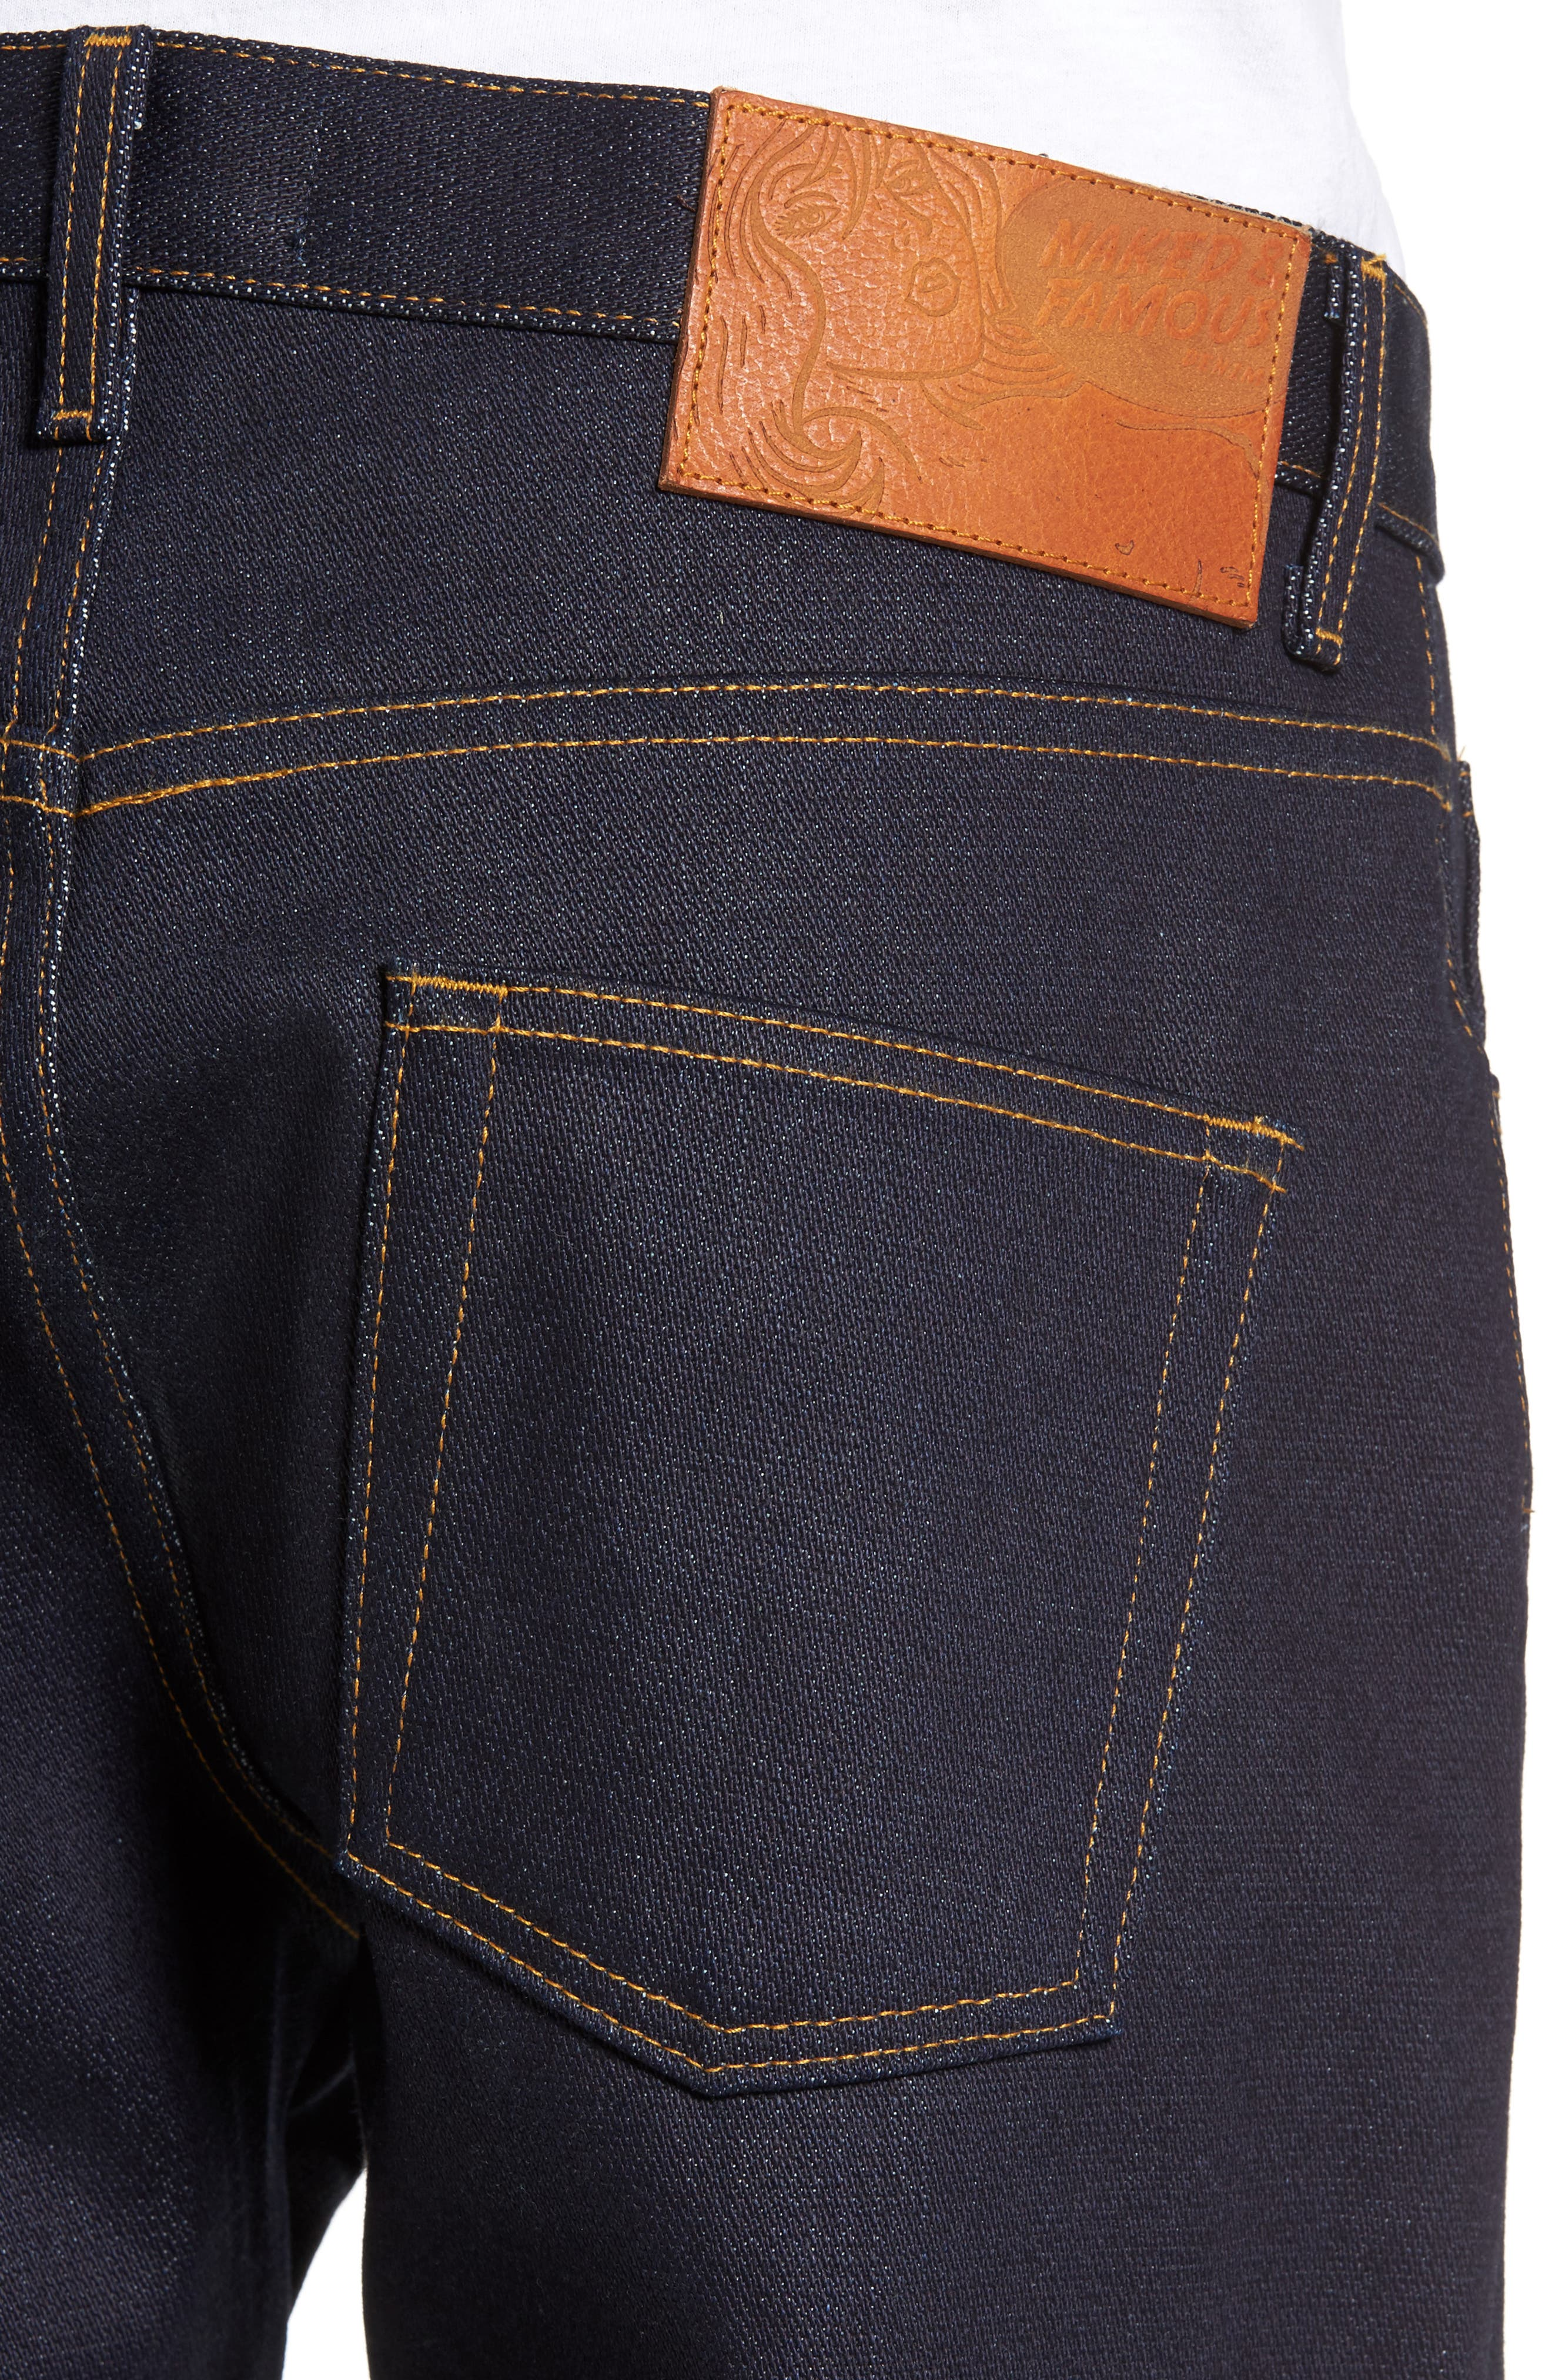 Easy Guy Slouchy Skinny Fit Jeans,                             Alternate thumbnail 4, color,                             401